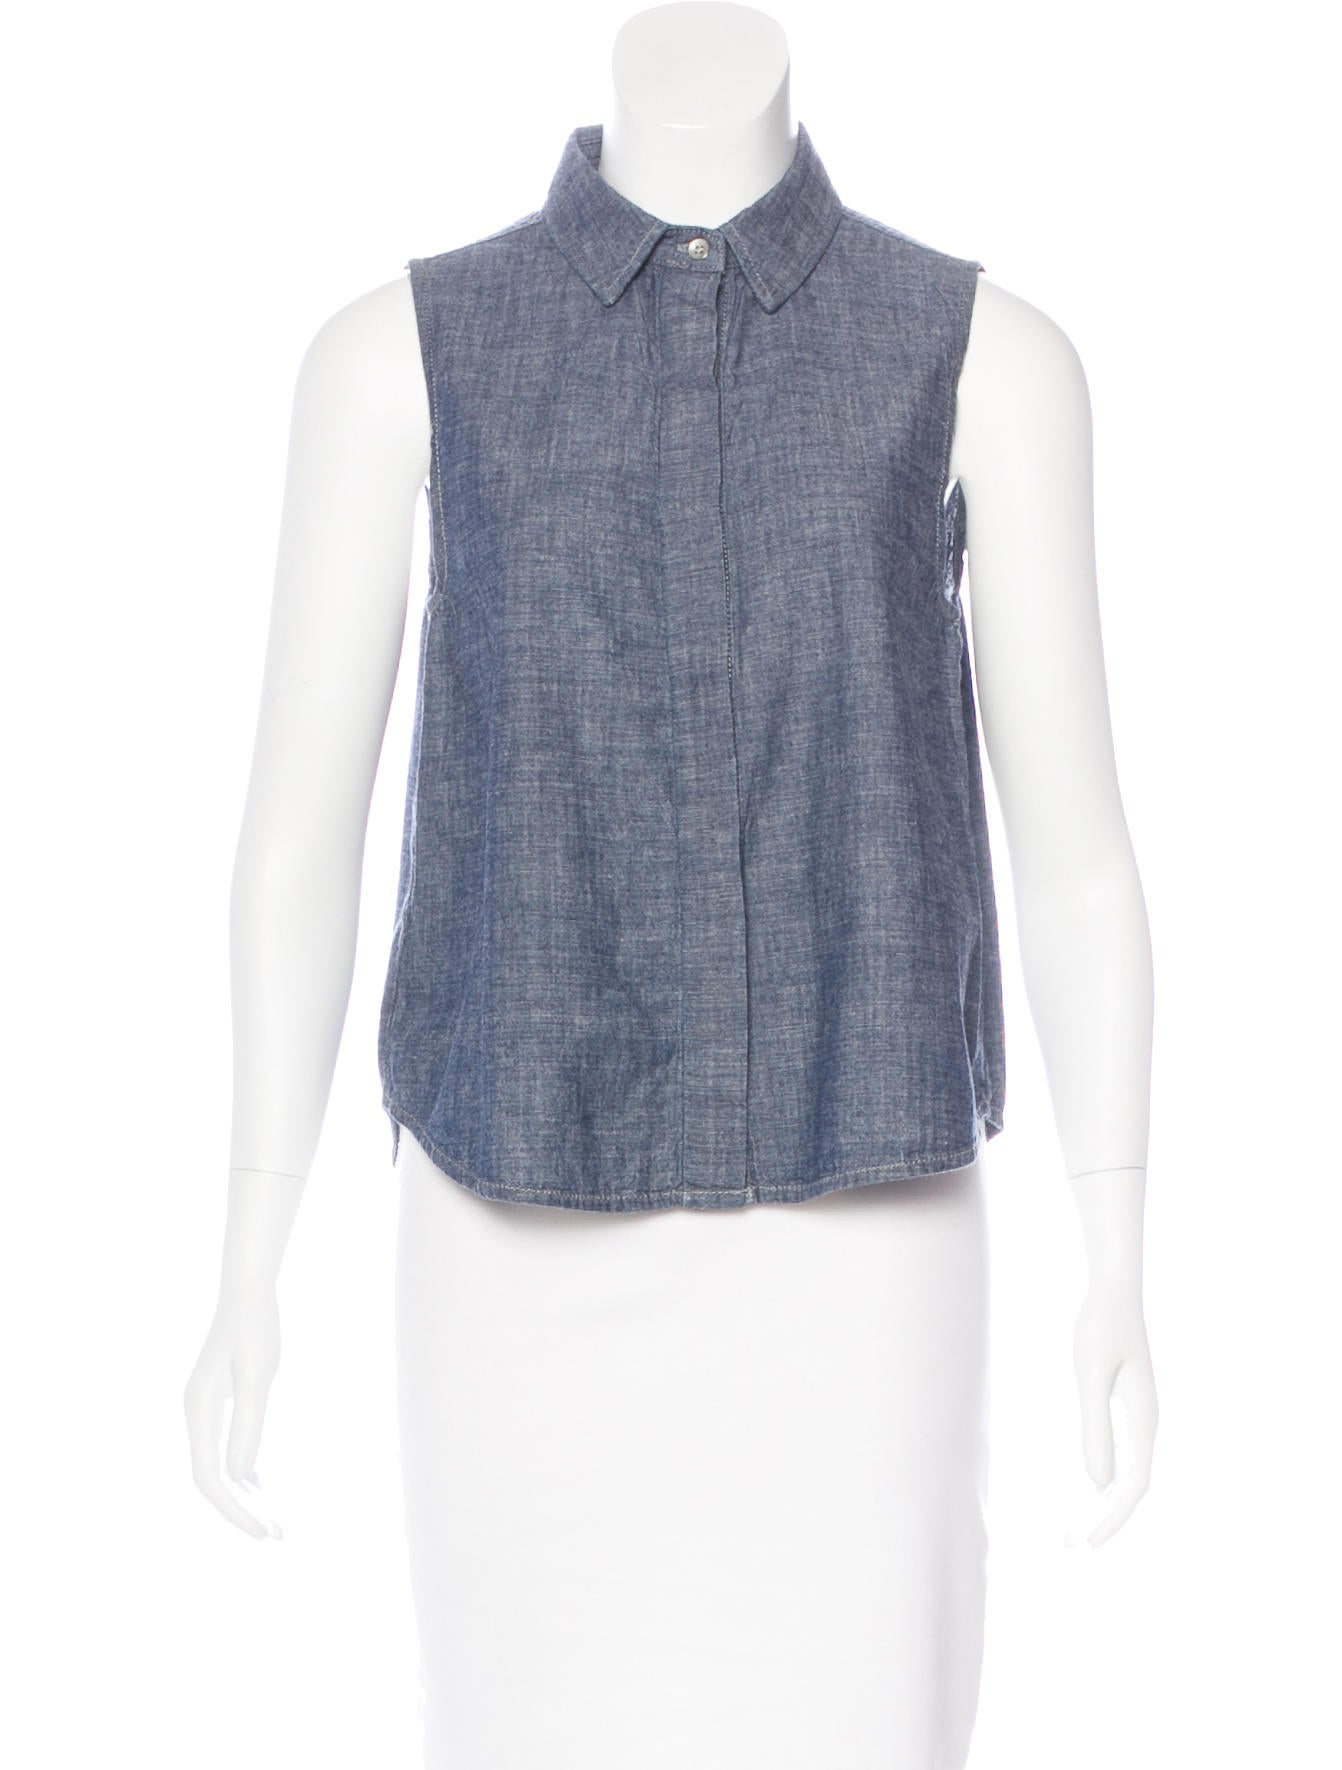 Rag bone chambray collared top clothing wragb70176 for Chambray top